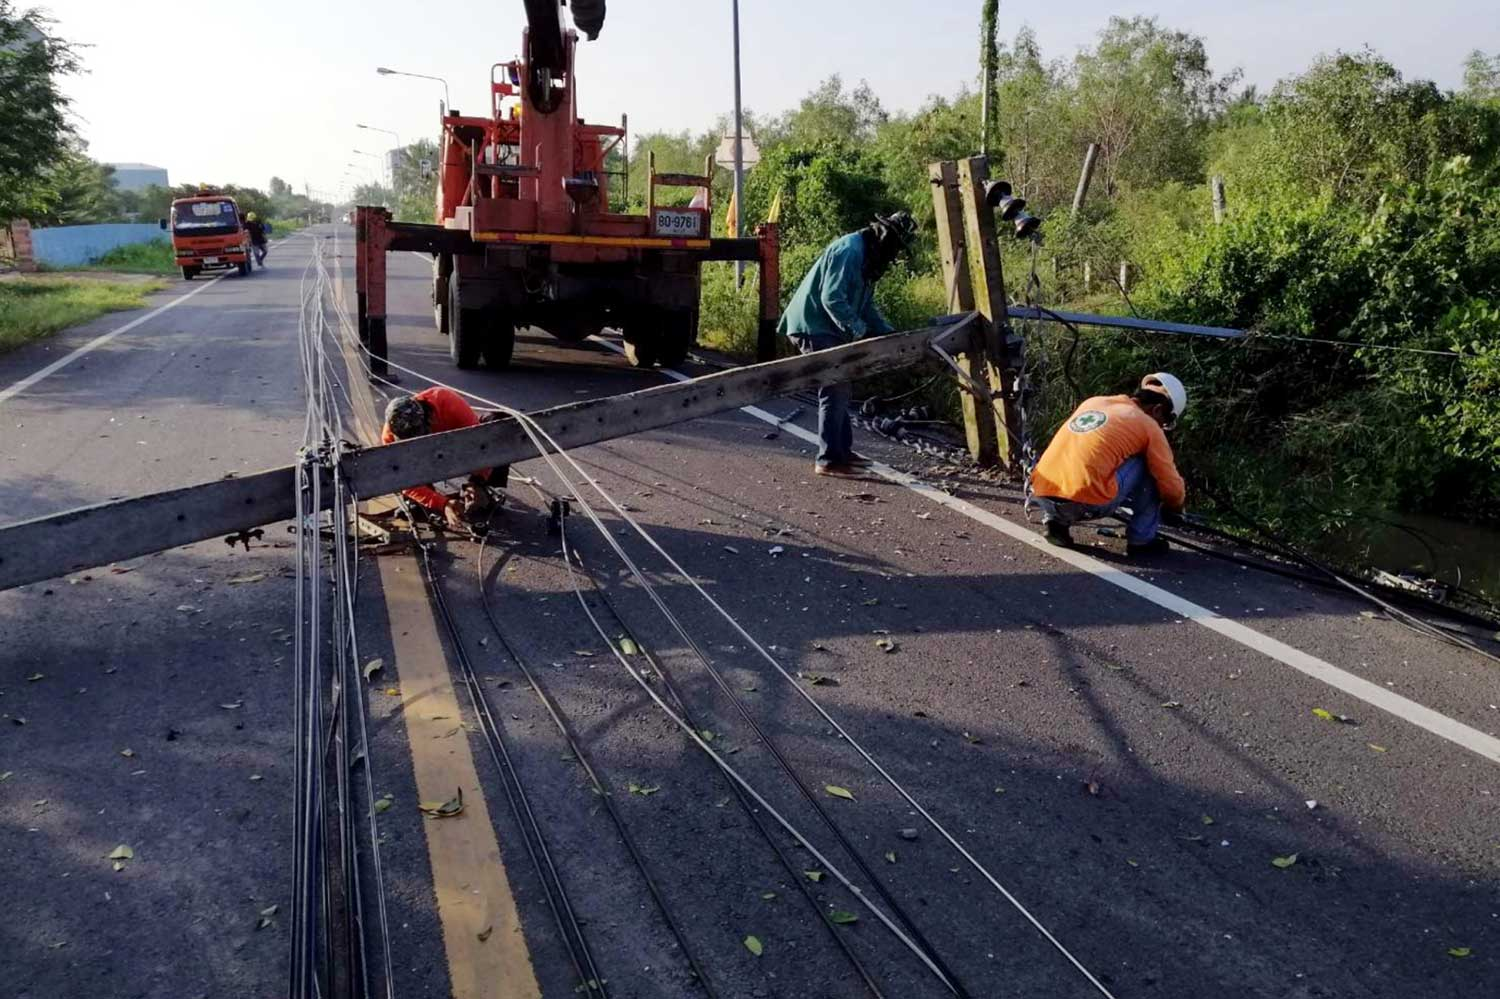 Workmen labour to clear the road and restore power on Wednesday after the storm hit Ban Laem district in Phetchaburi province on Tuesday night. (Photo by Chaiwat Satyaem)